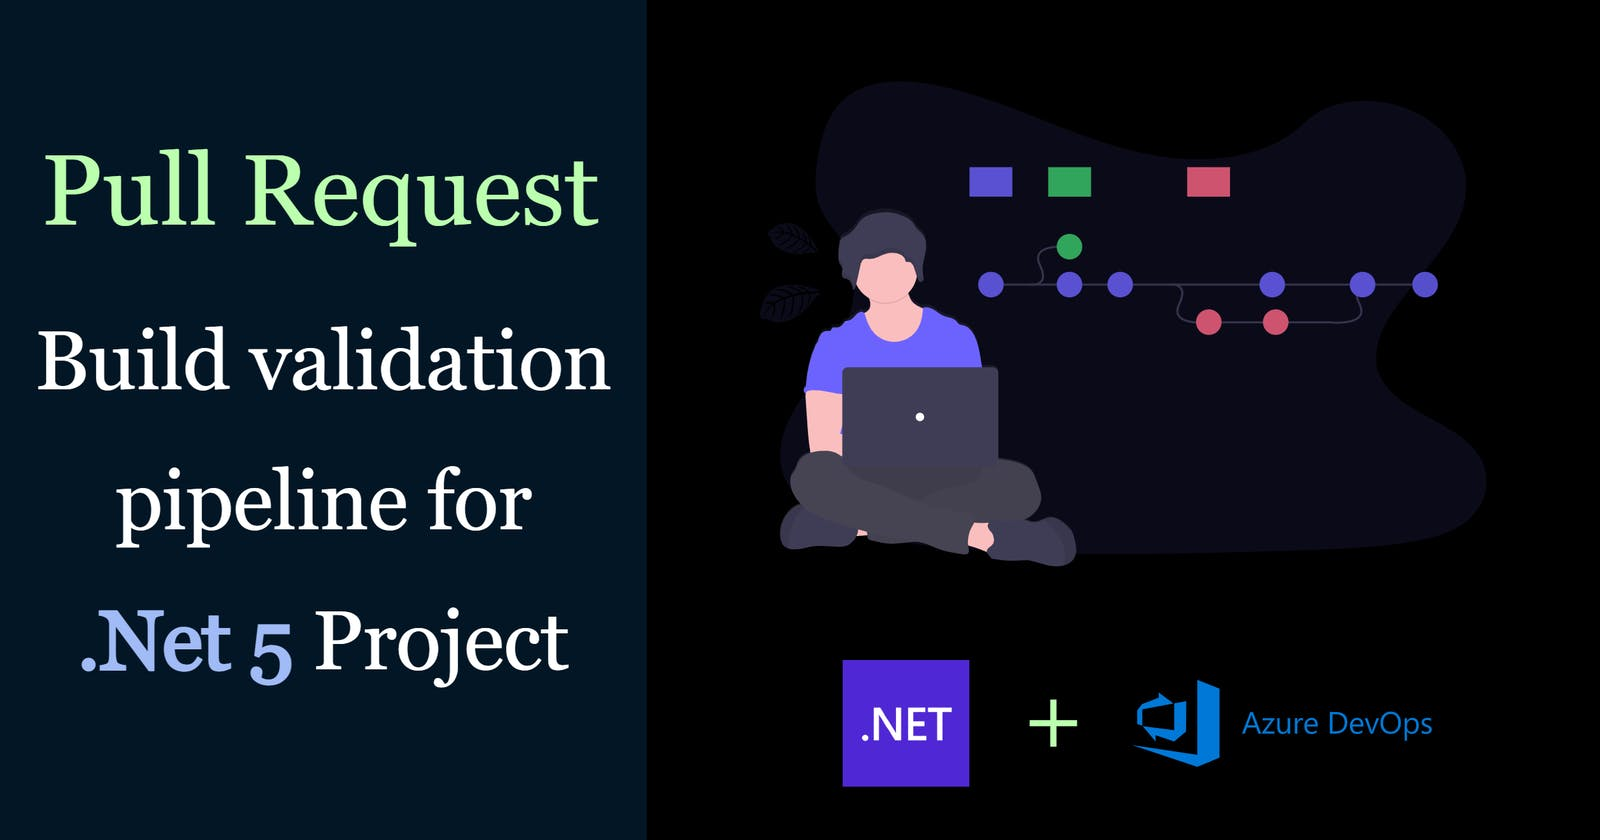 Azure DevOps Pull Request build validation pipeline for .Net 5 project